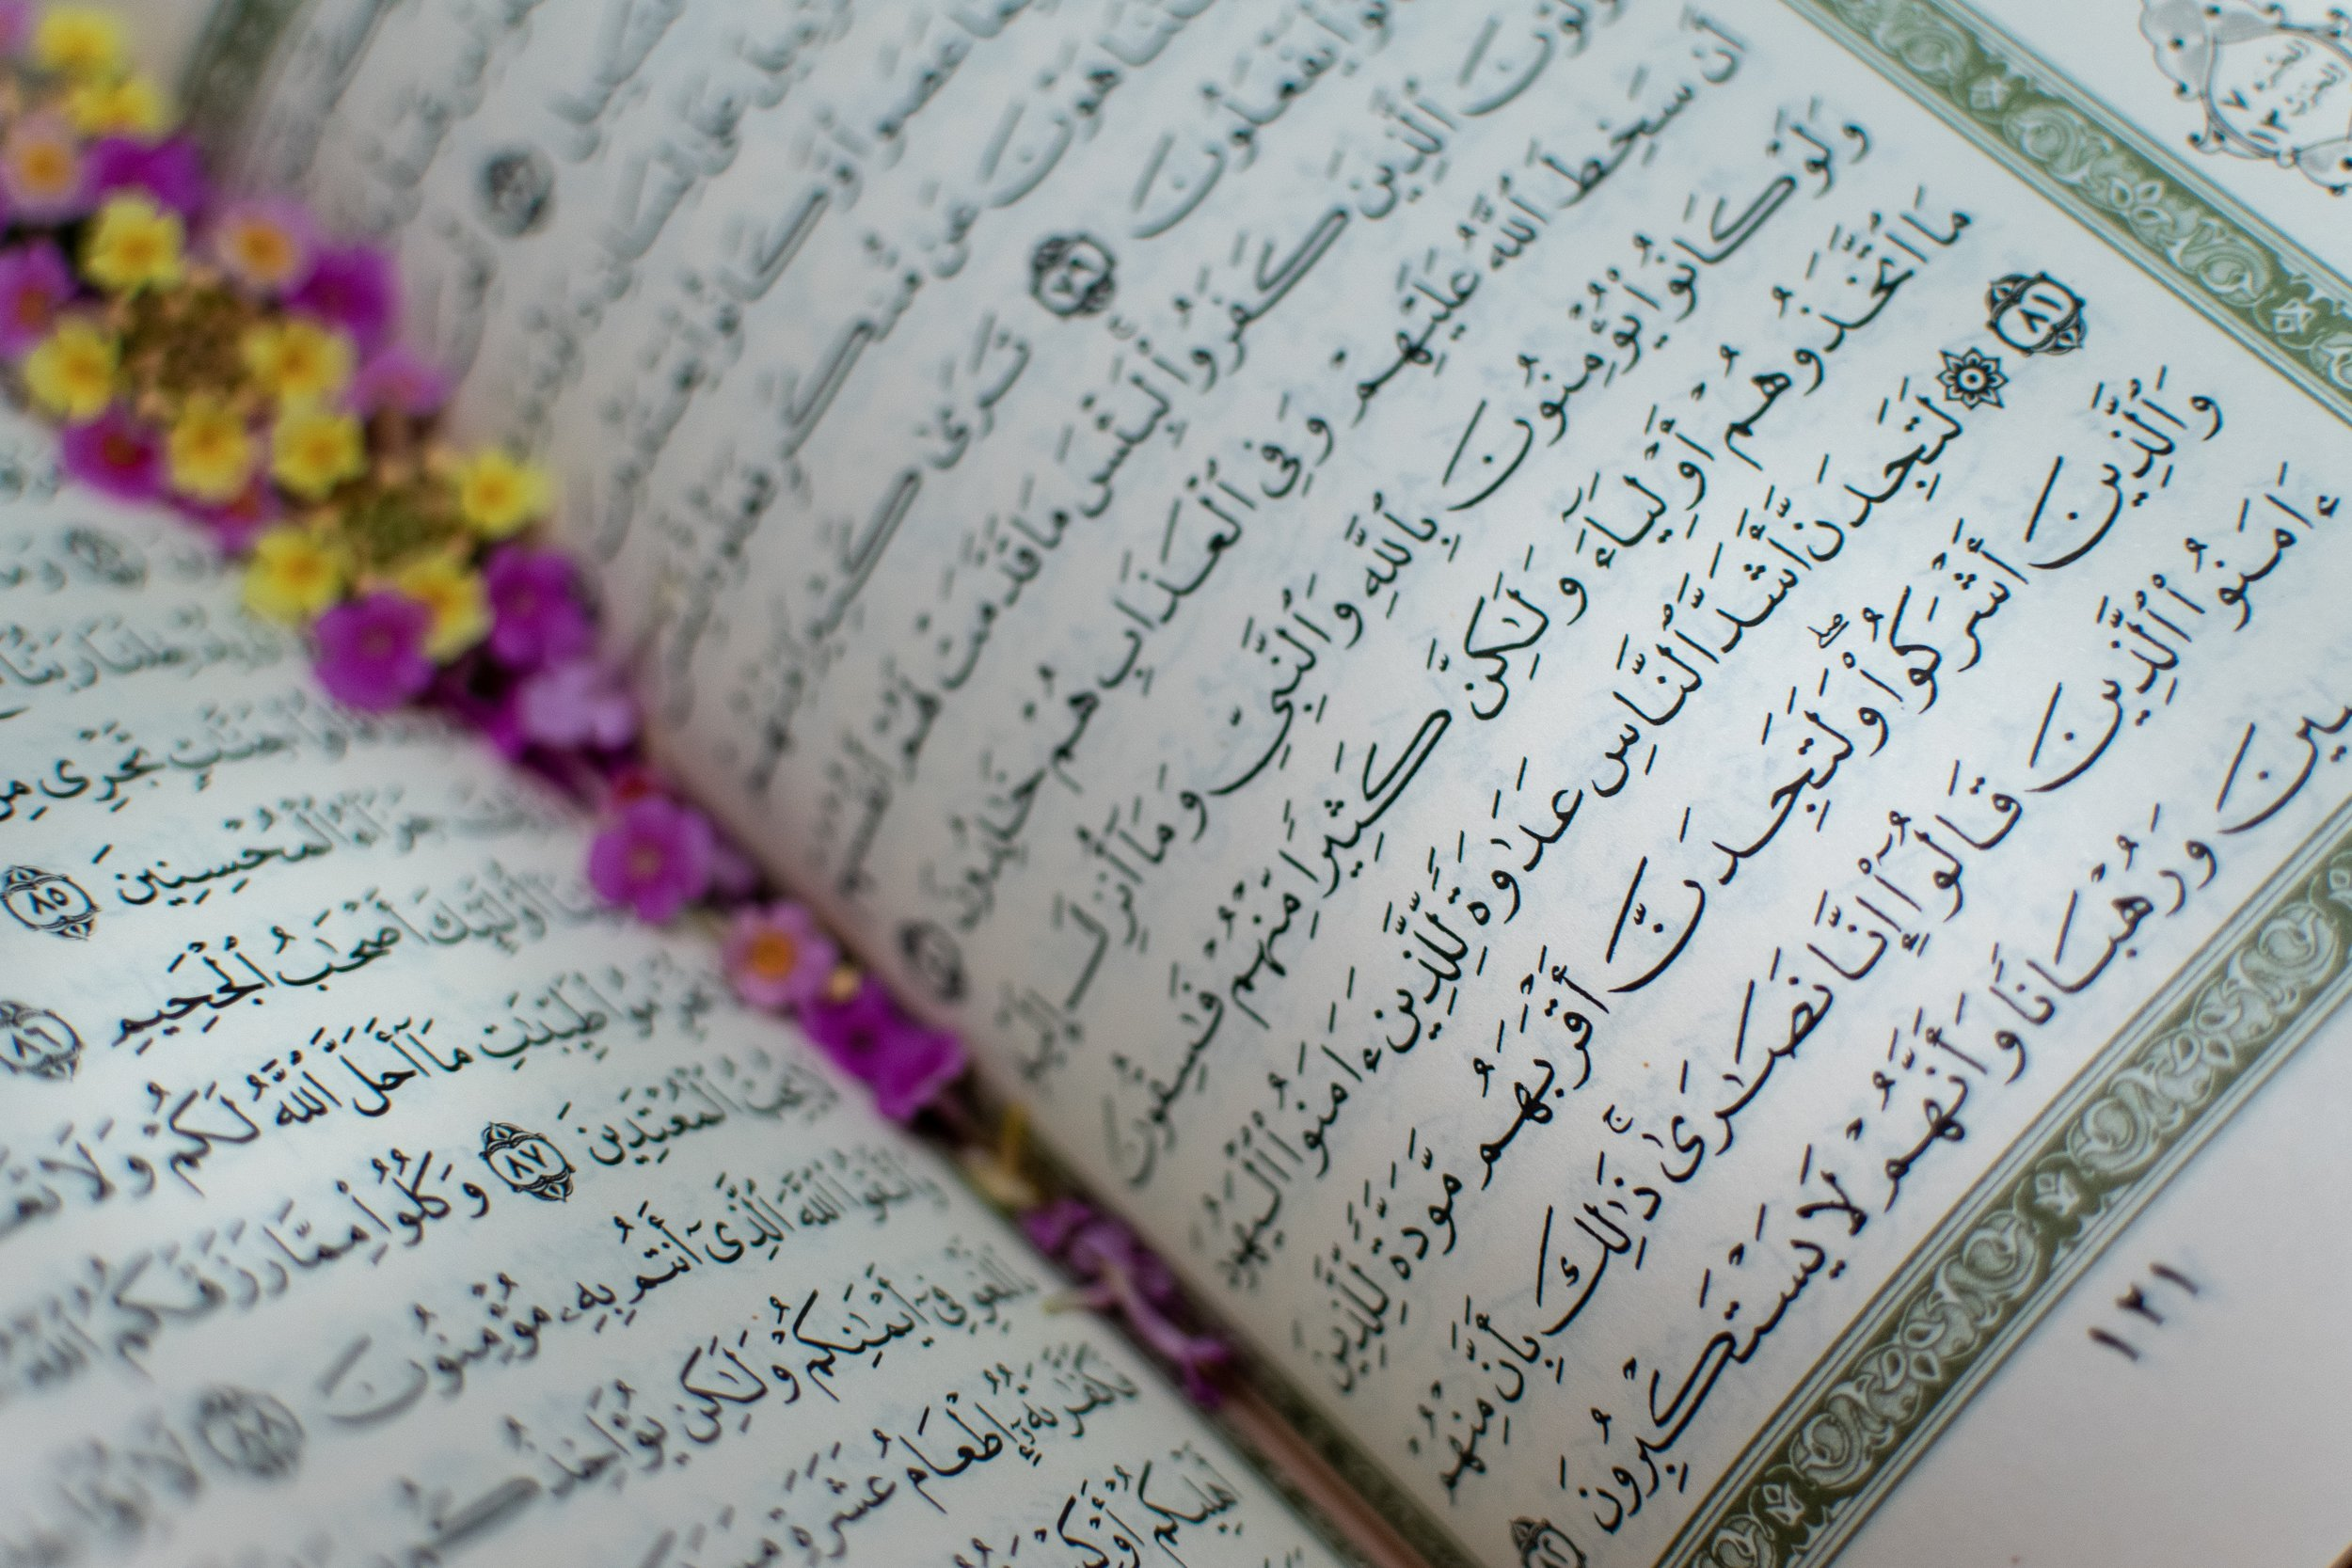 Some of the world's most ancient religious traditions focus on complicated handwriting and calligraphy as a way to learn and pass on information. Photo by  Ashkan Forouzani  on  Unsplash